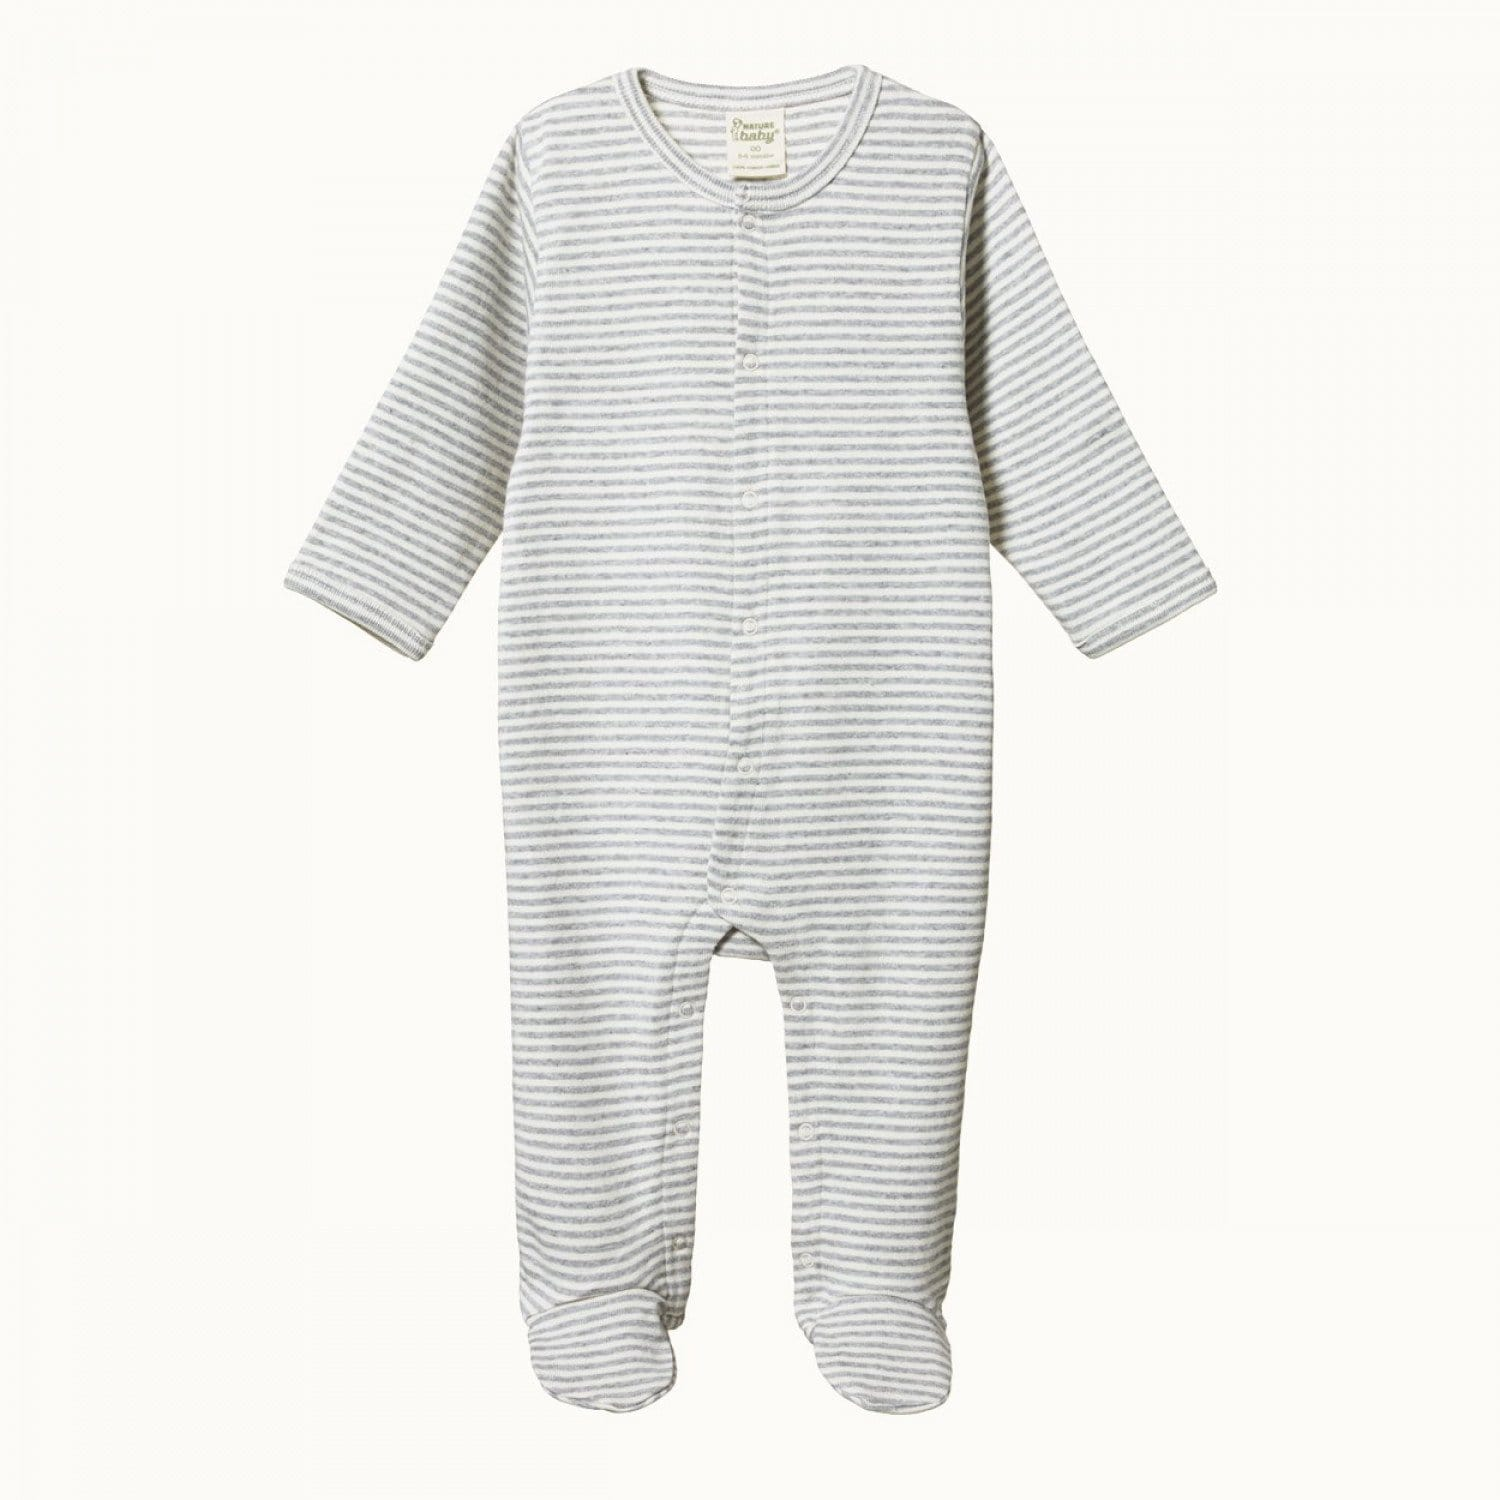 Grey Marl Stripe / Newborn Nature Baby Organic Cotton Stretch & Grow Suit (Multiple Variants) - Naked Baby Eco Boutique